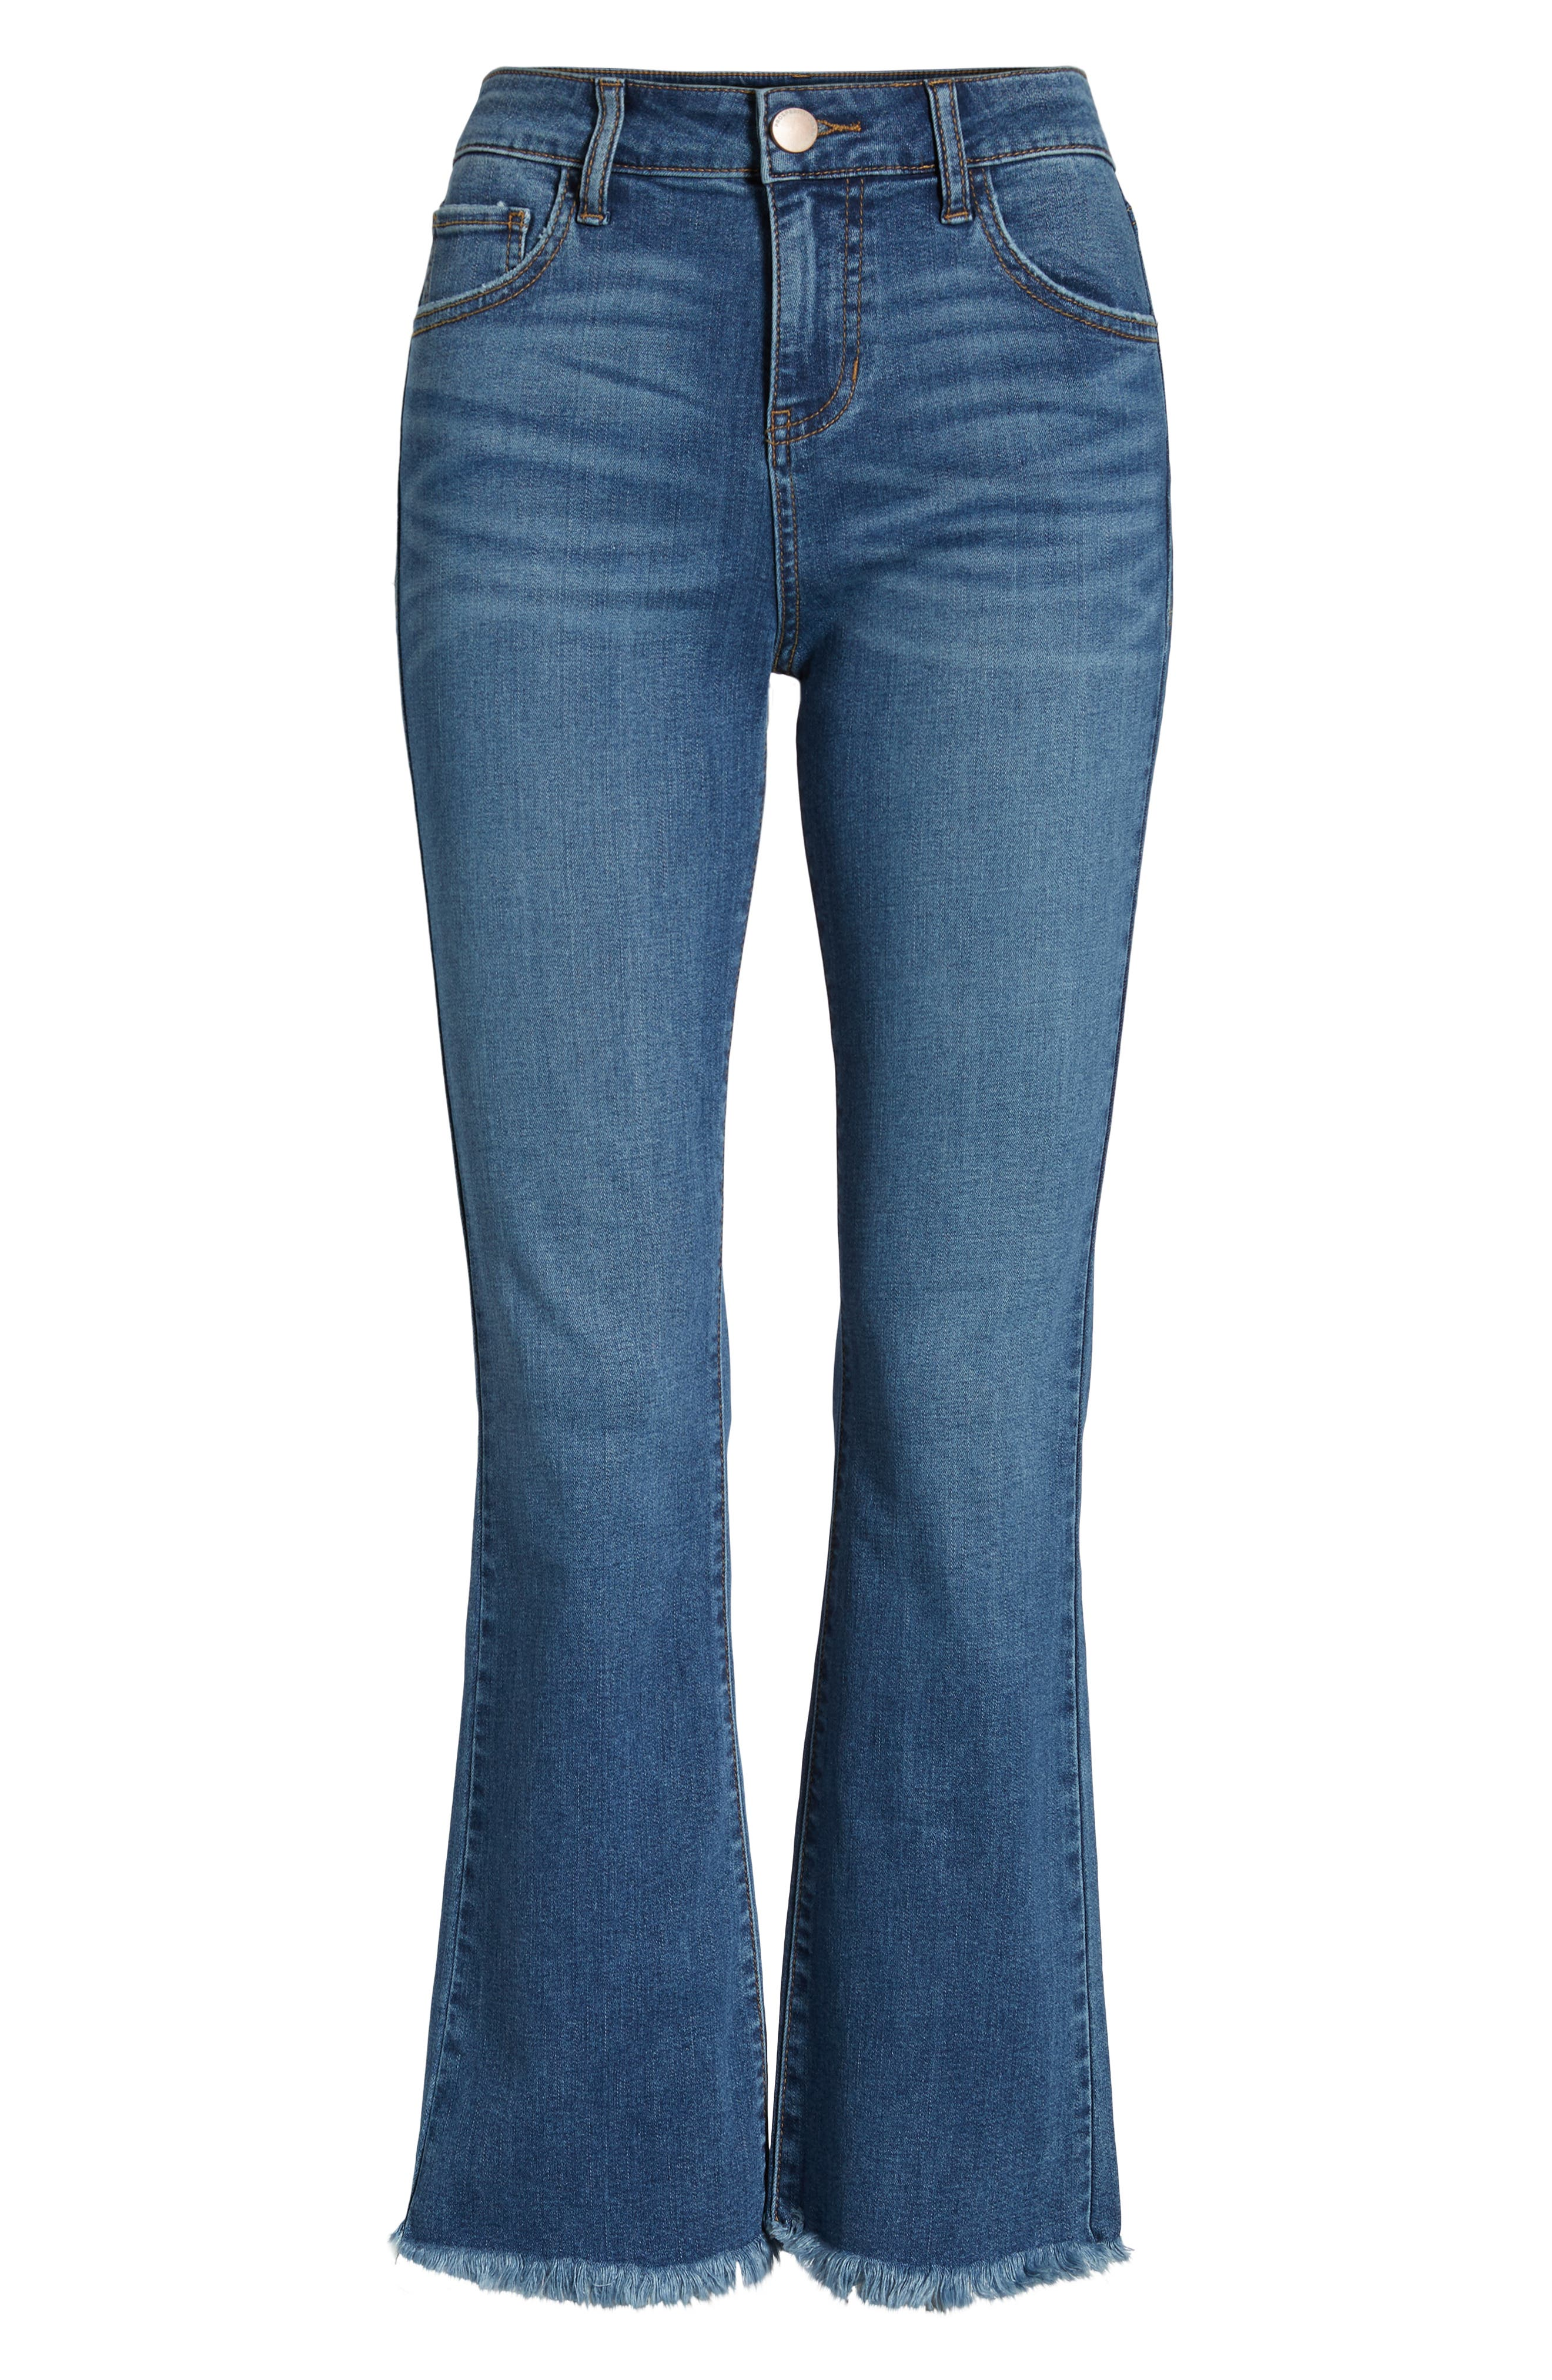 High Waist Crop Flare Jeans,                             Alternate thumbnail 7, color,                             COOL GIRL MED WASH